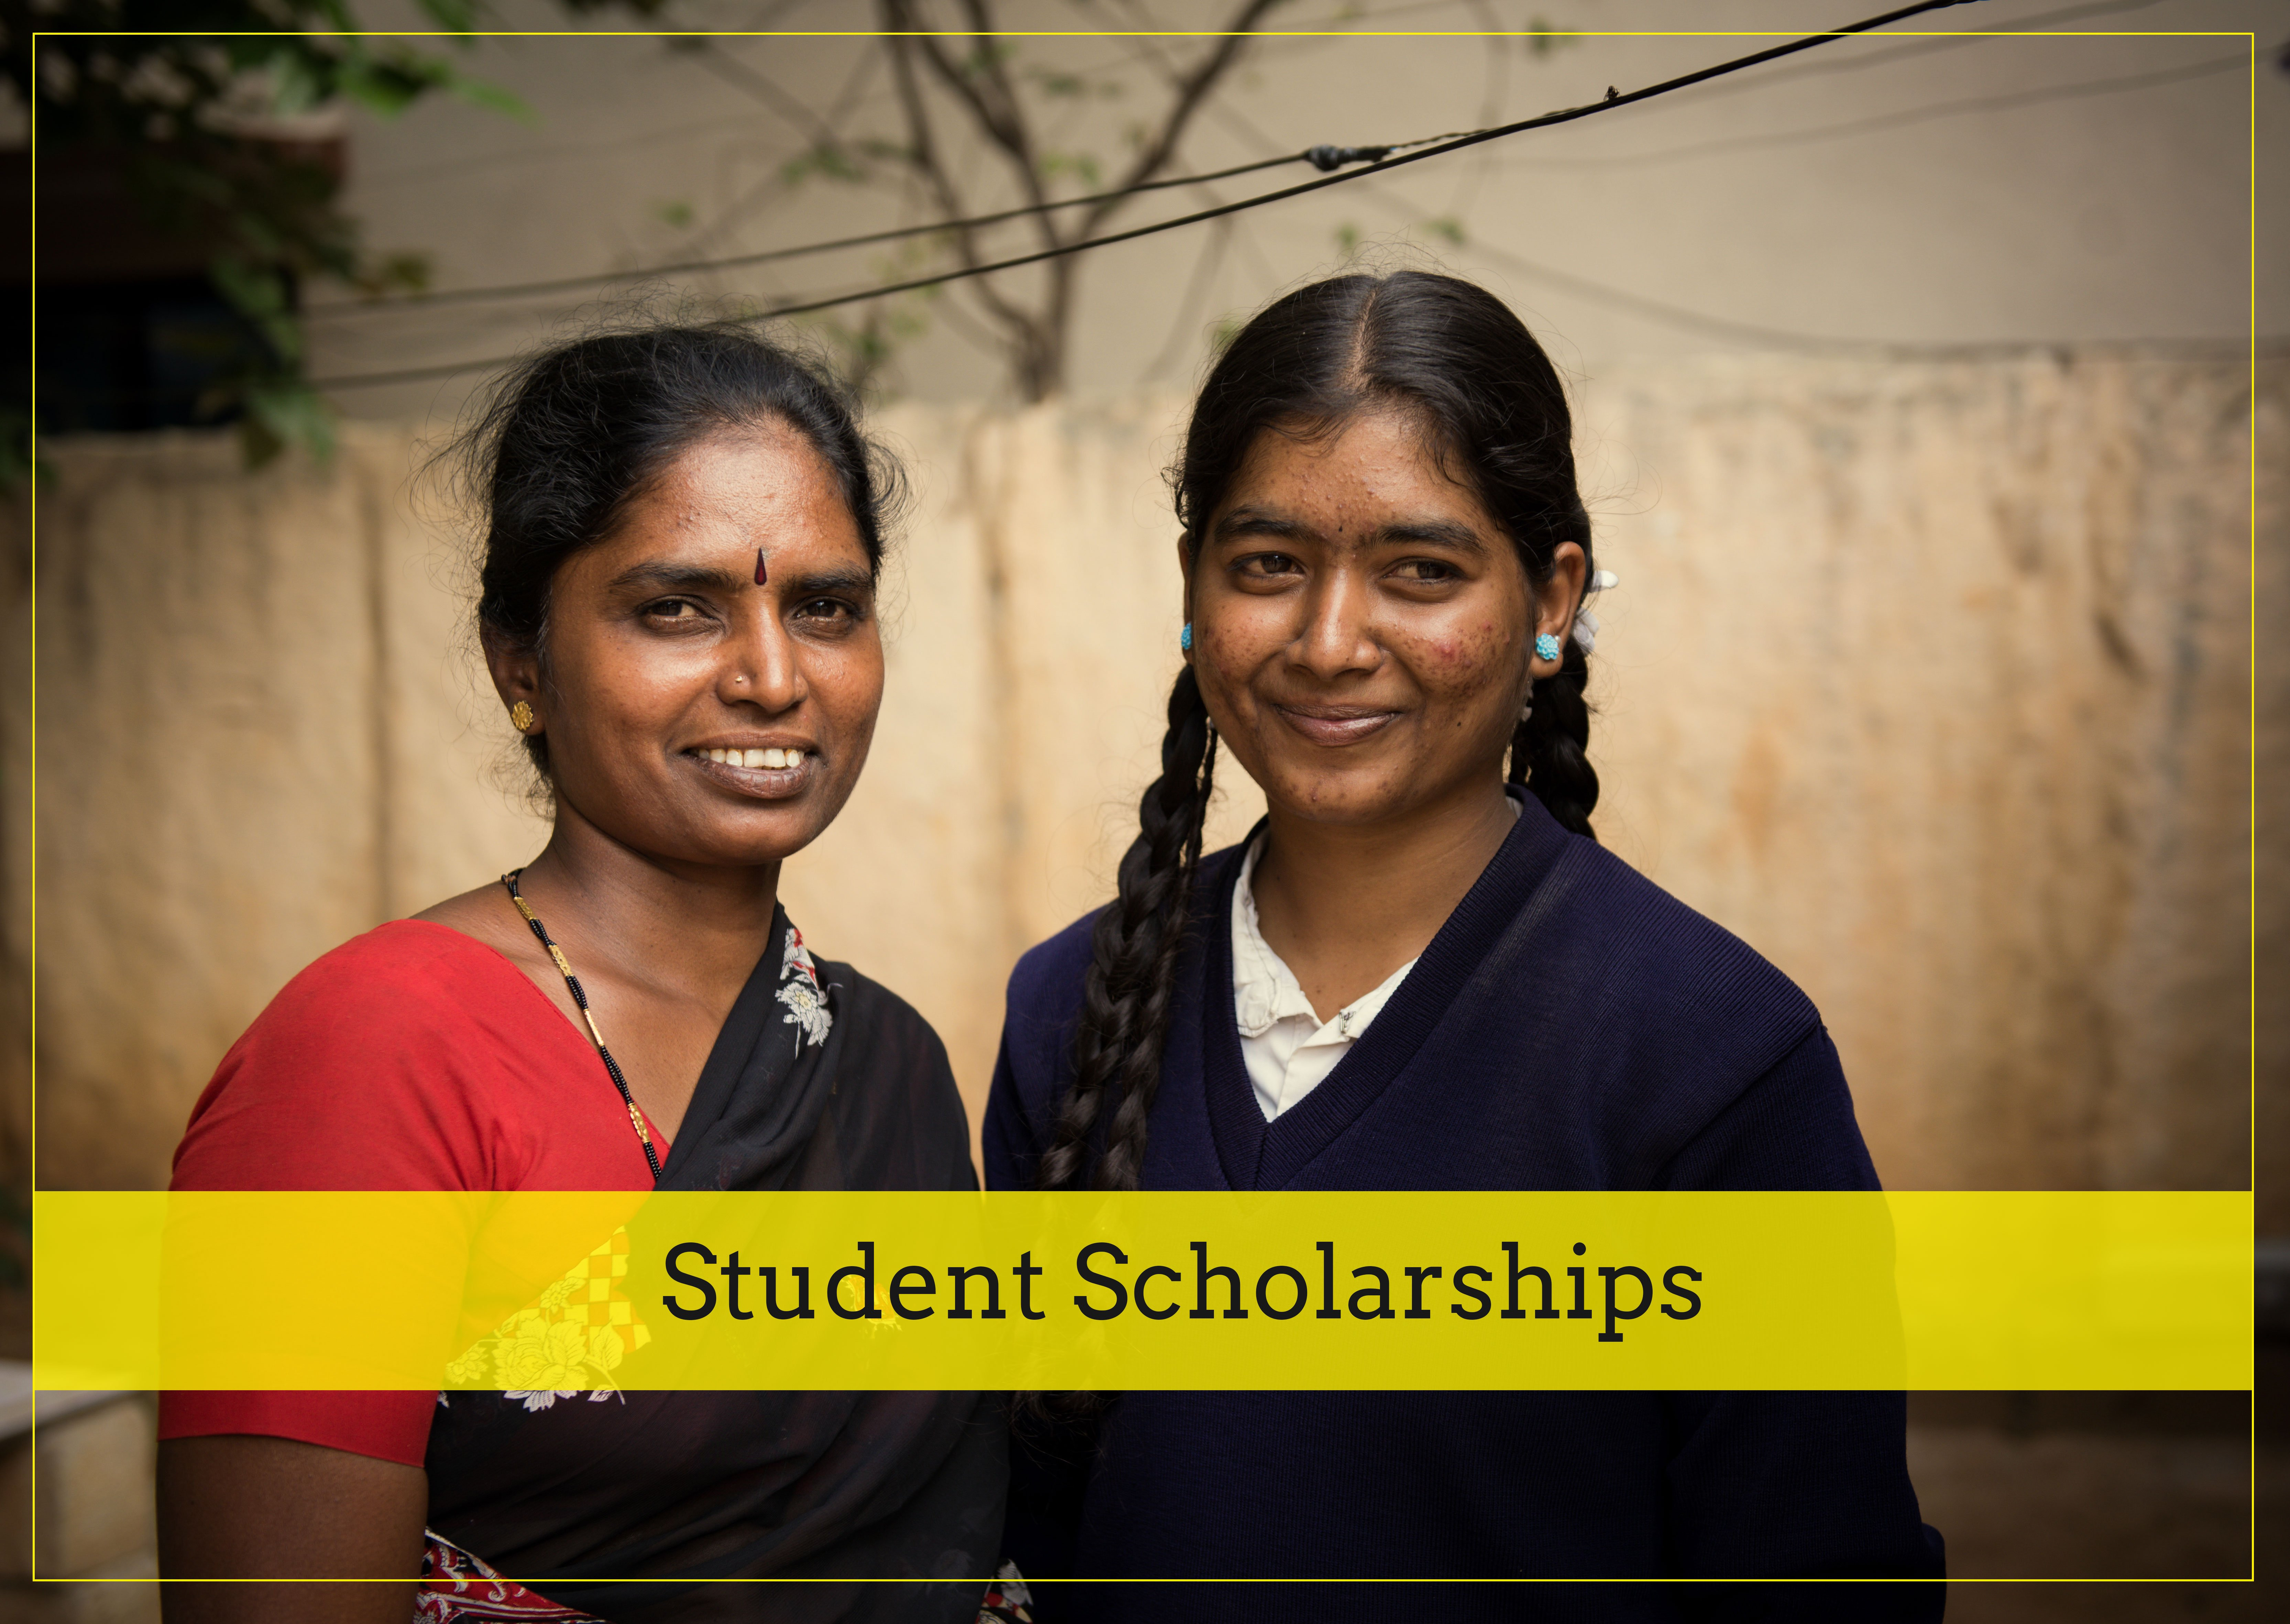 Student-Scholarships